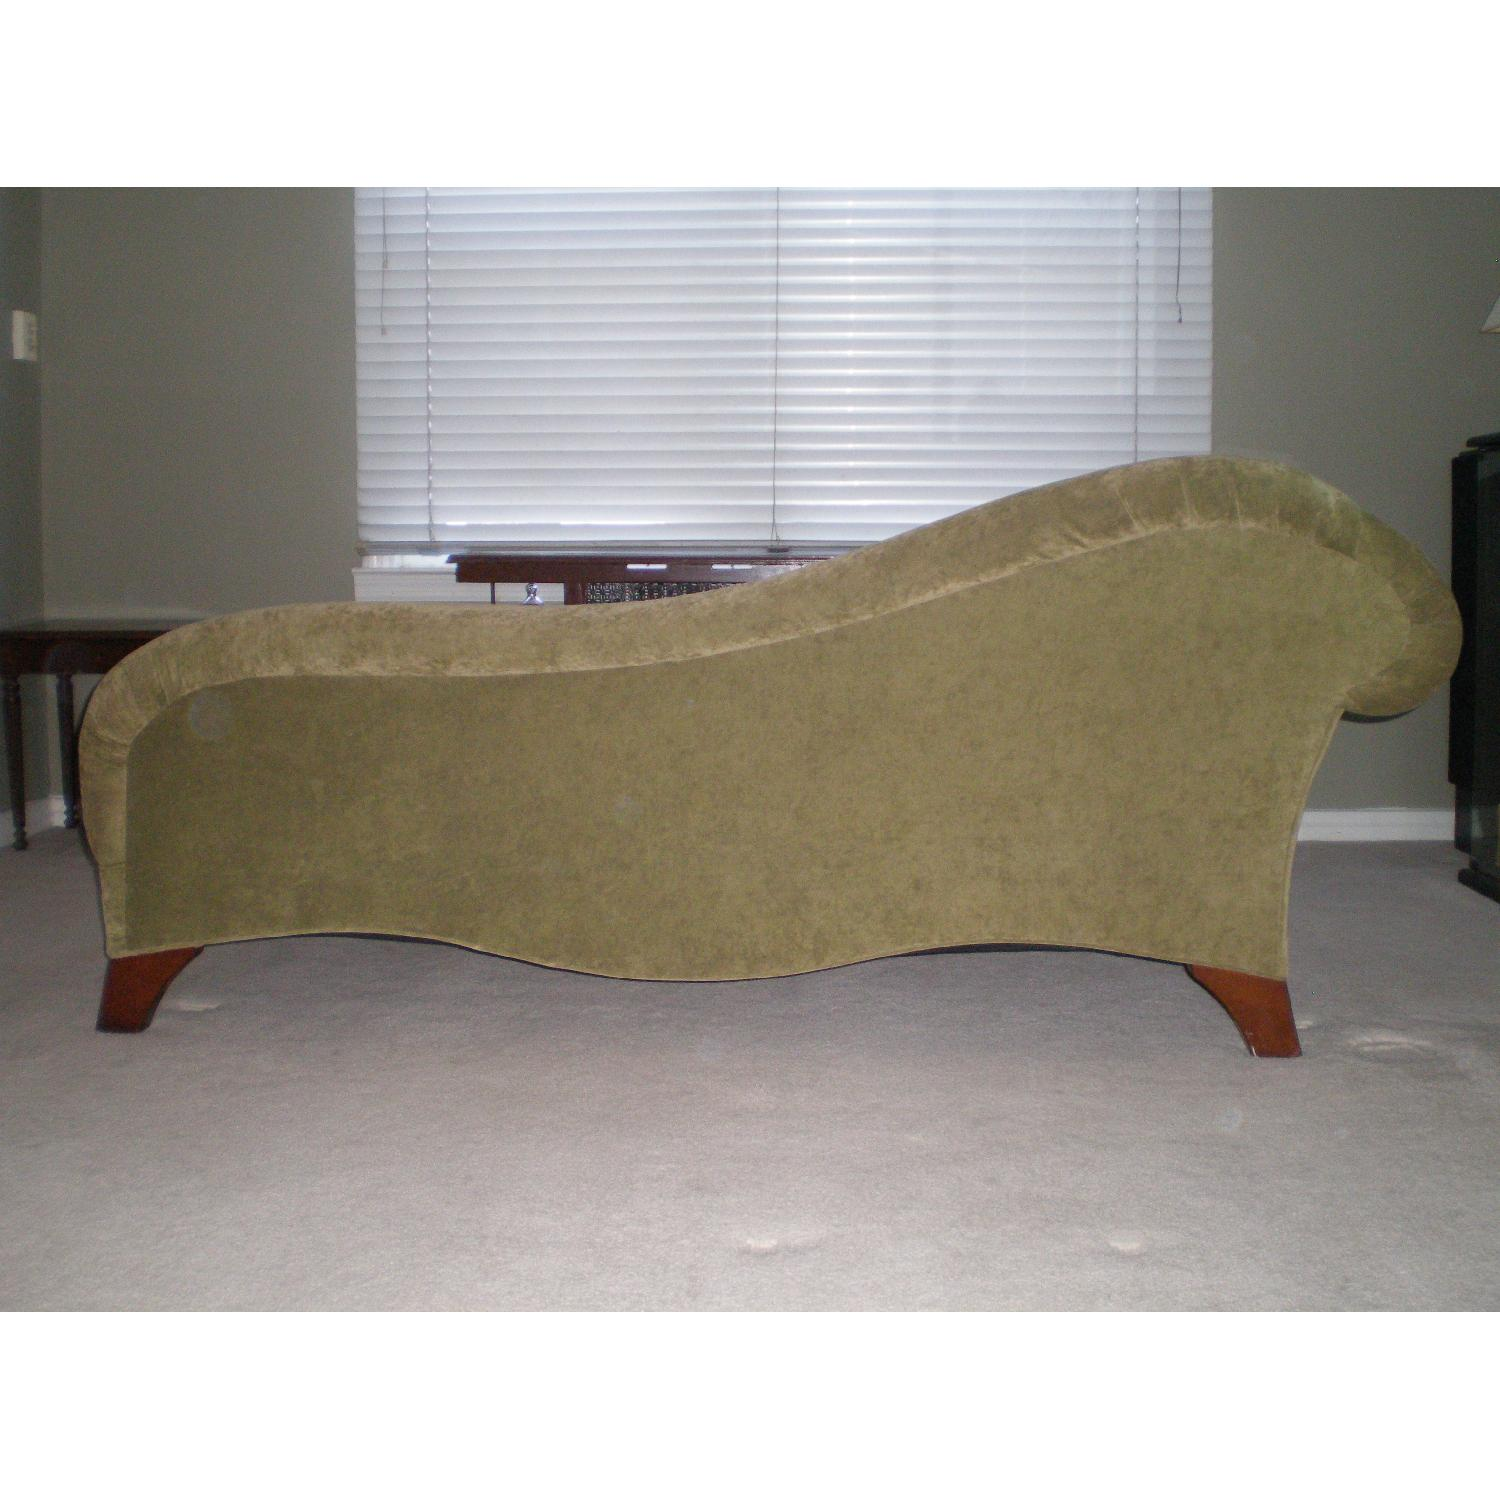 Chaise Lounge with Matching Pillow - image-4